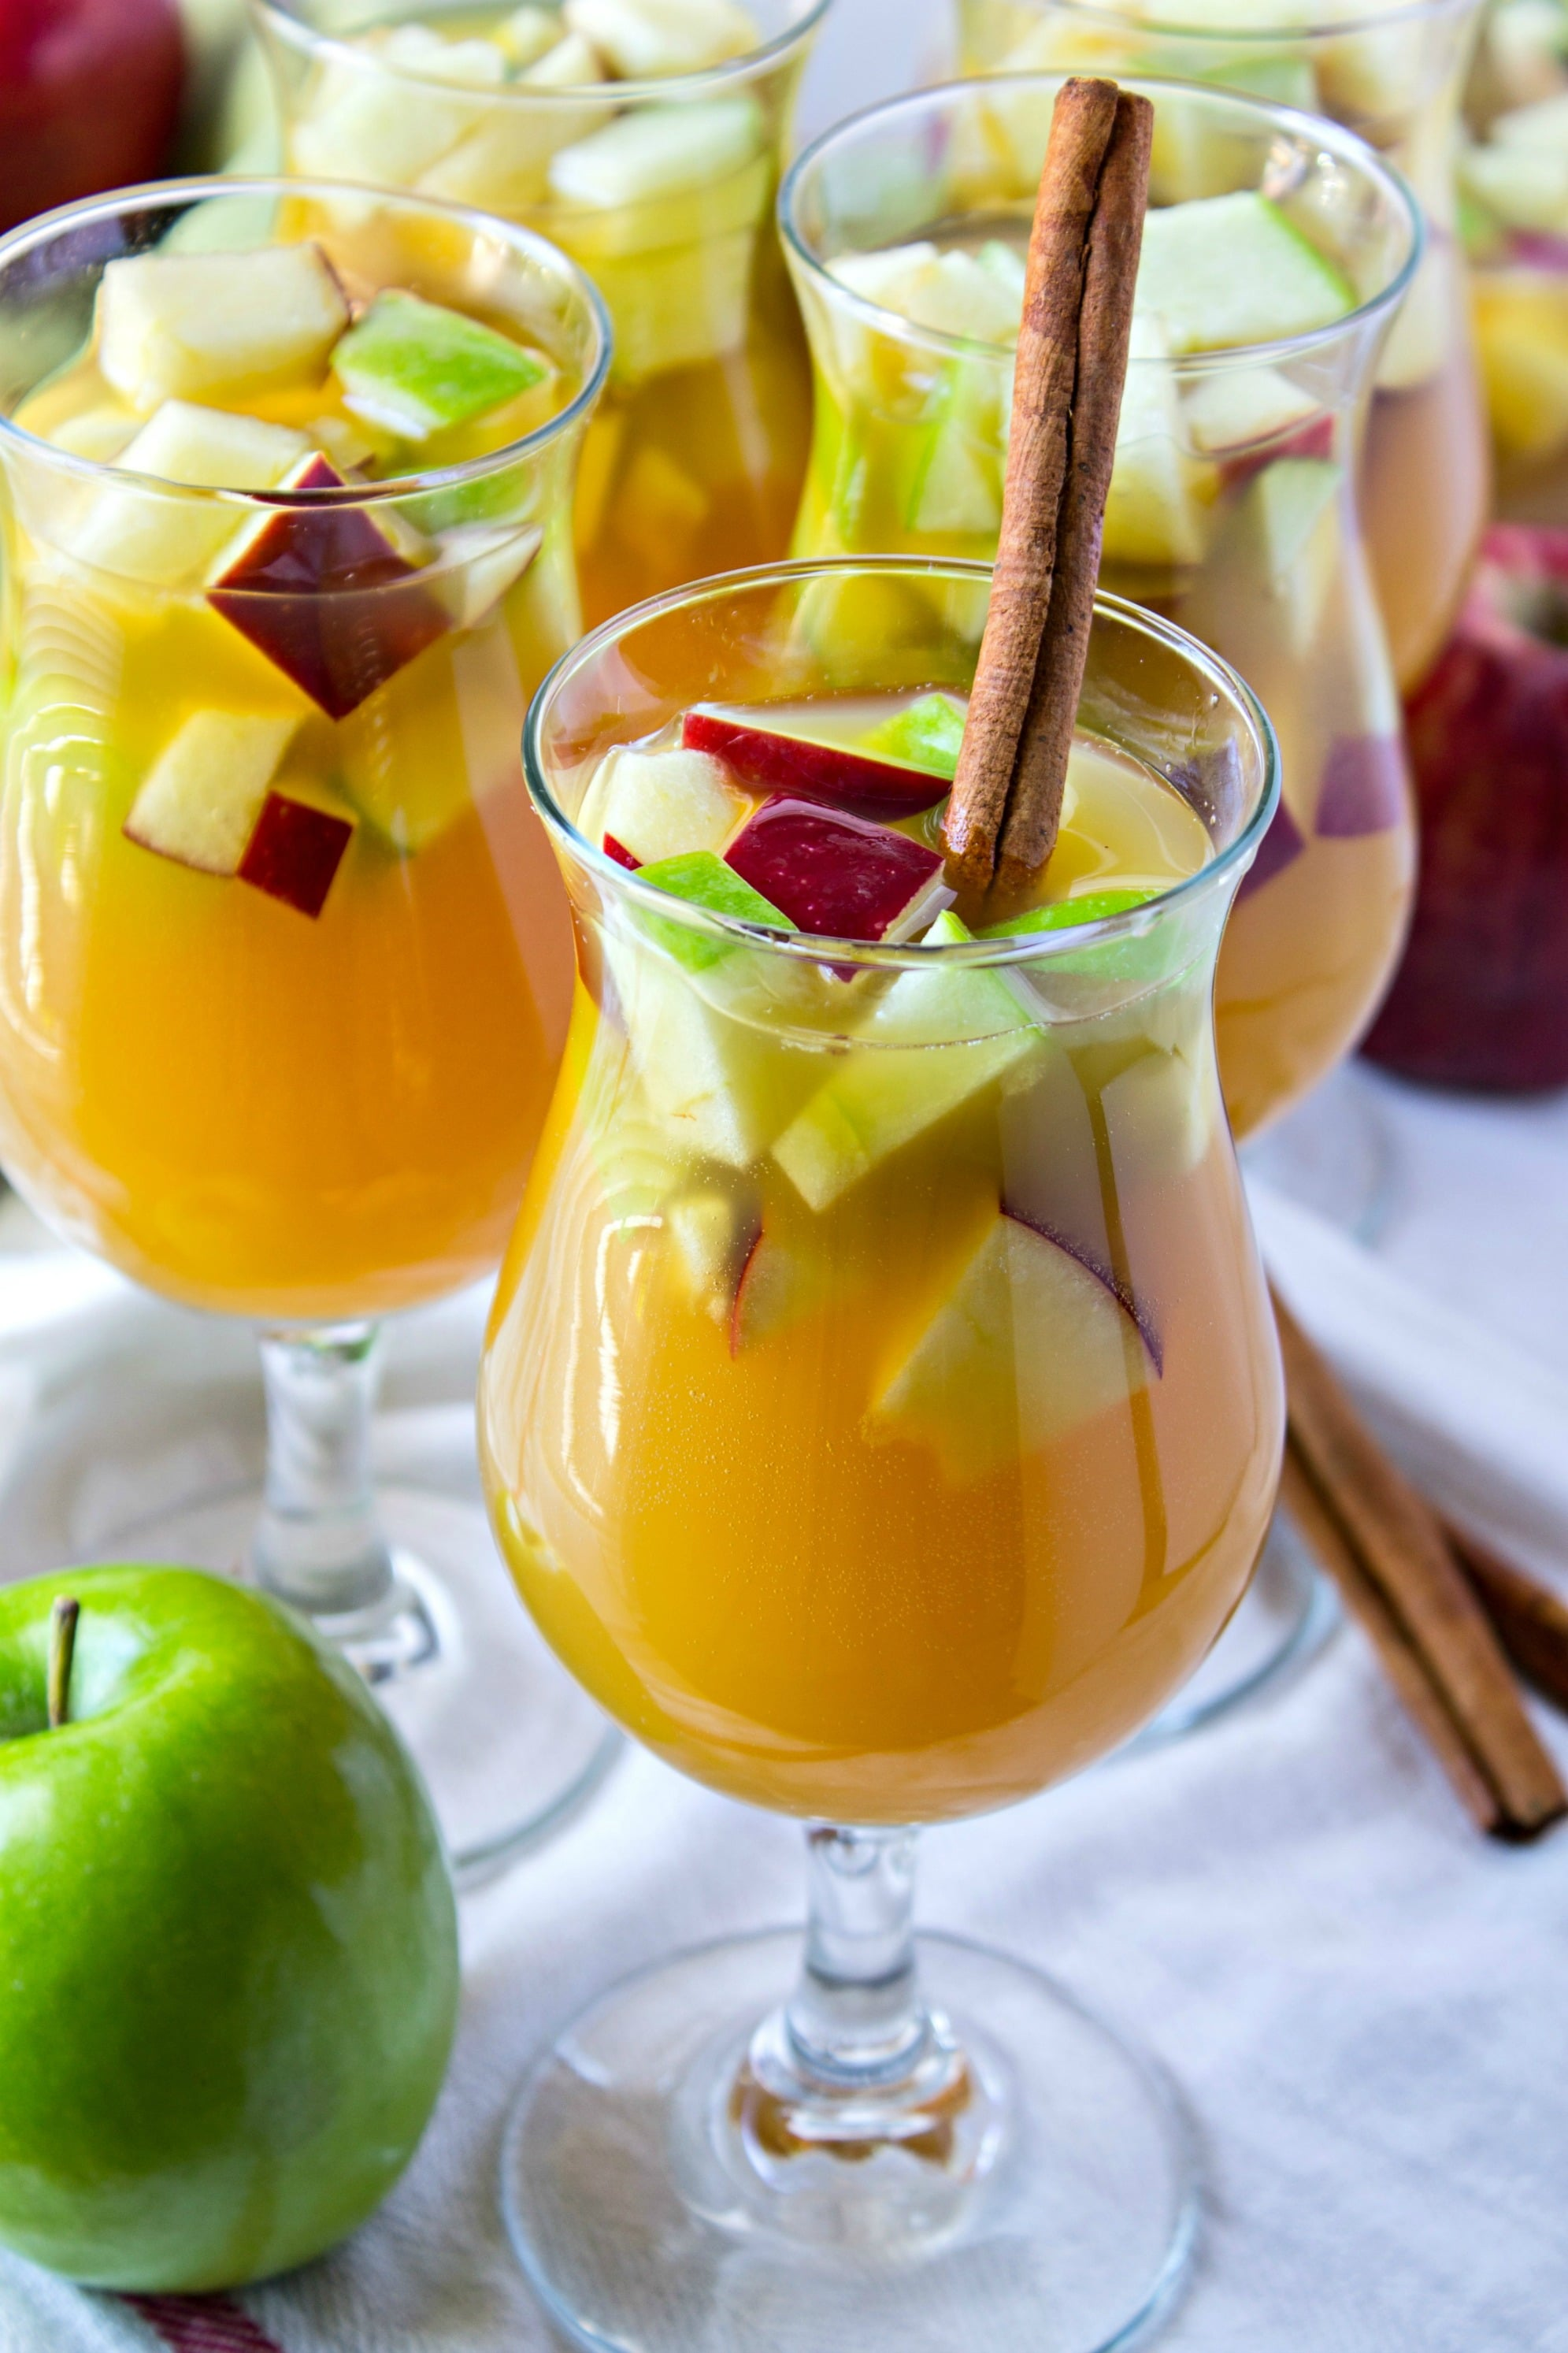 Sparkling Apple Cider Sangria - Apple cider, prosecco, amaretto, and ginger ale combine to make this delicious sangria. A perfect cocktail for the fall!